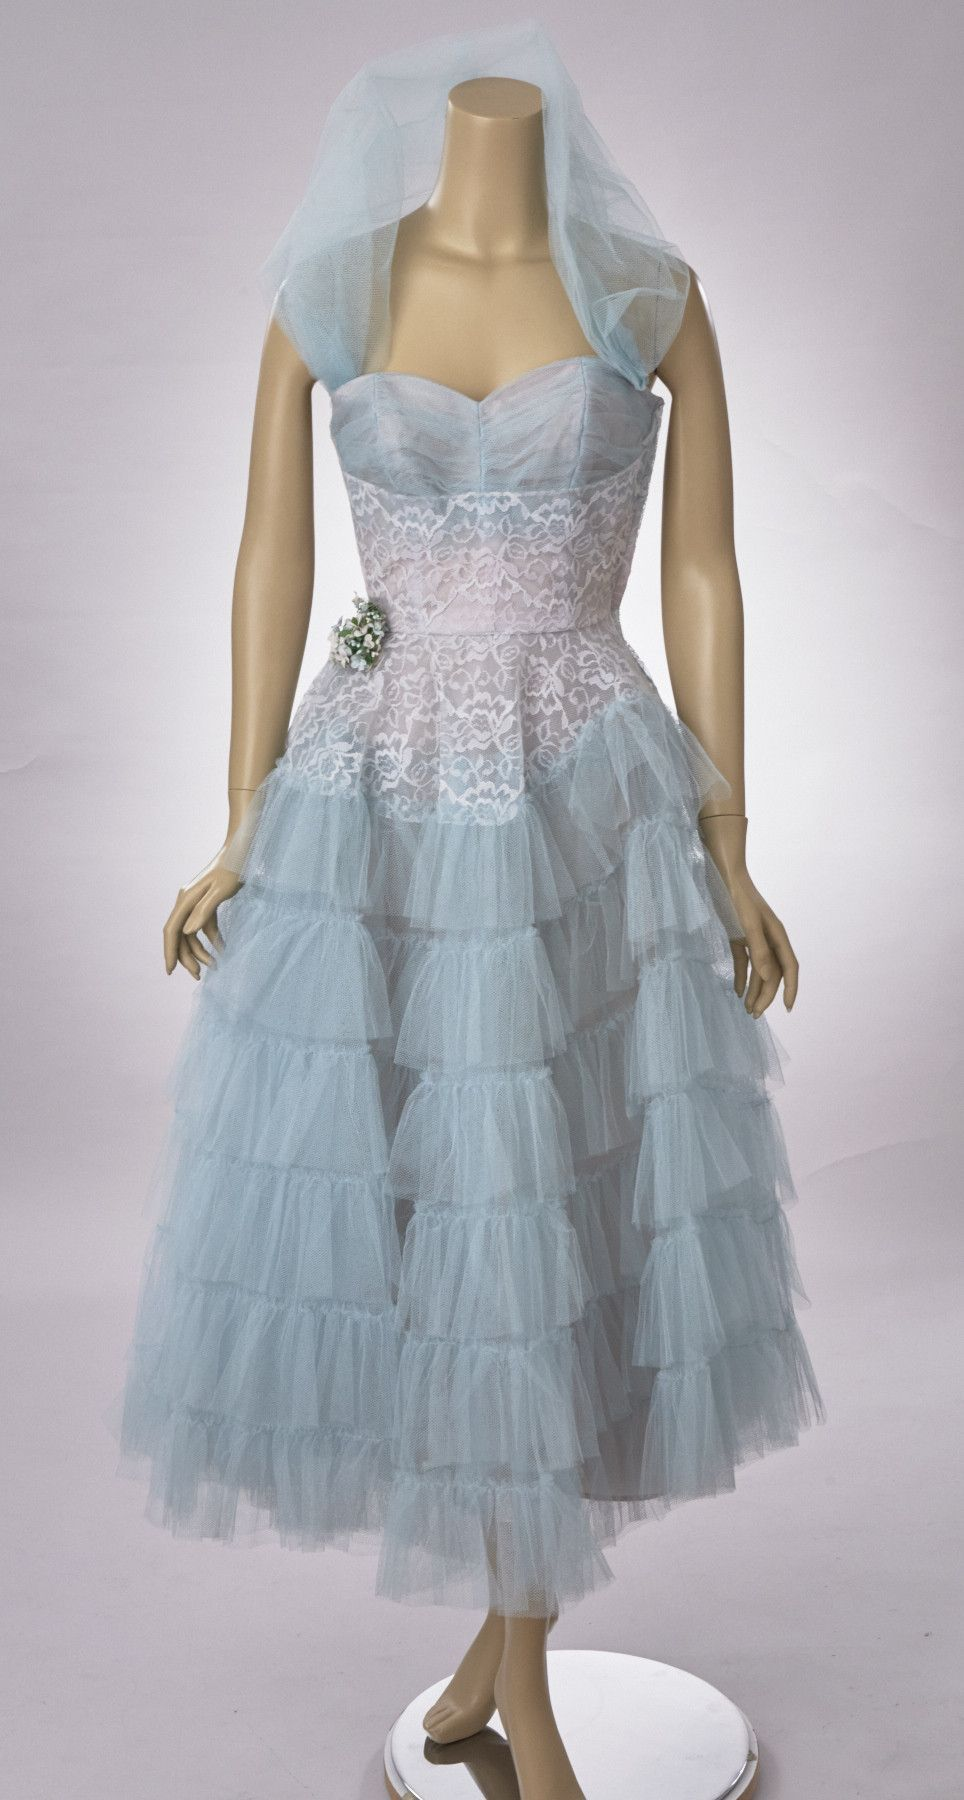 Blue & White Tulle Party Dress | White tulle, Prom and 1950s